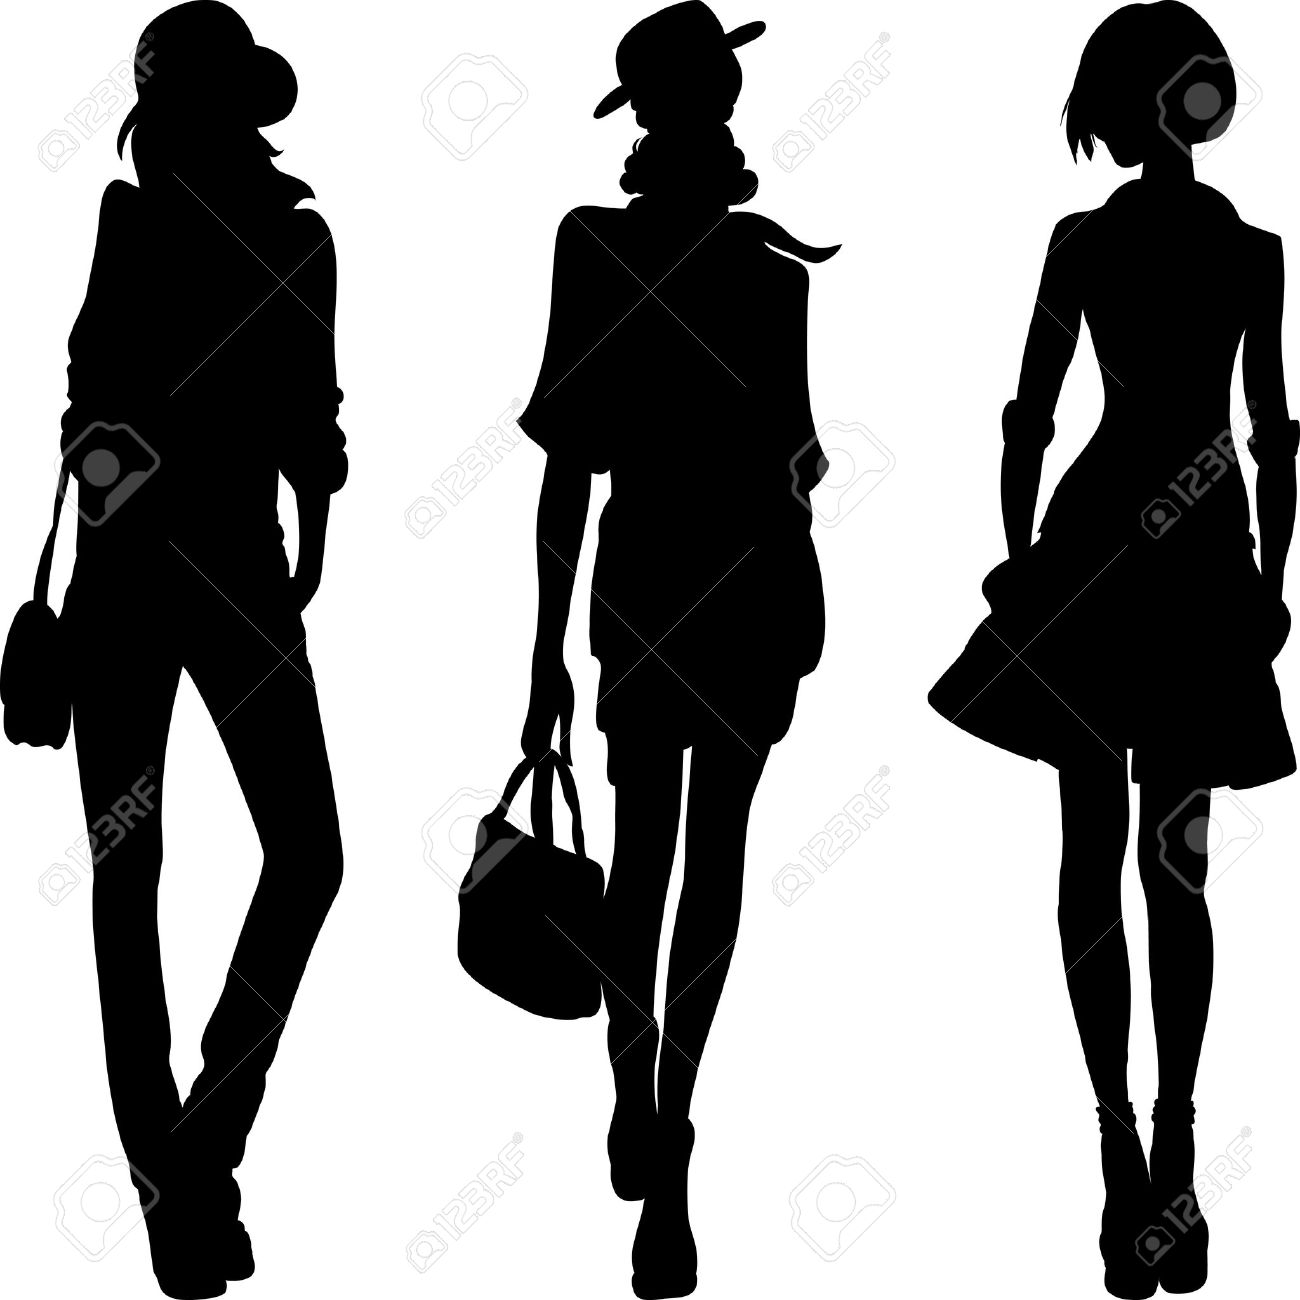 set 1 silhouette of fashion girls top models - 22719197